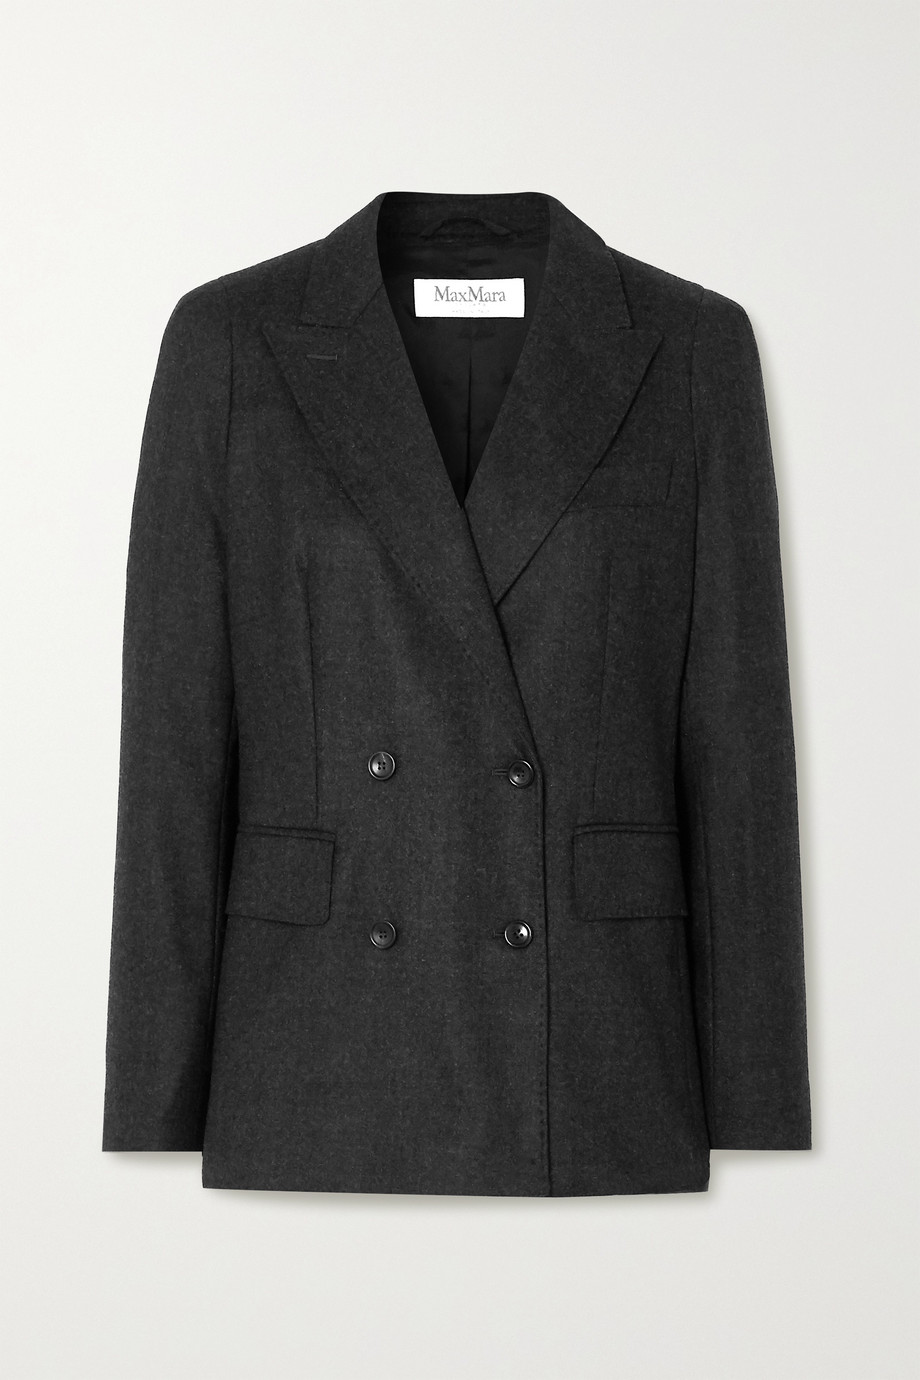 Max Mara Oblio double-breasted mélange wool-blend blazer